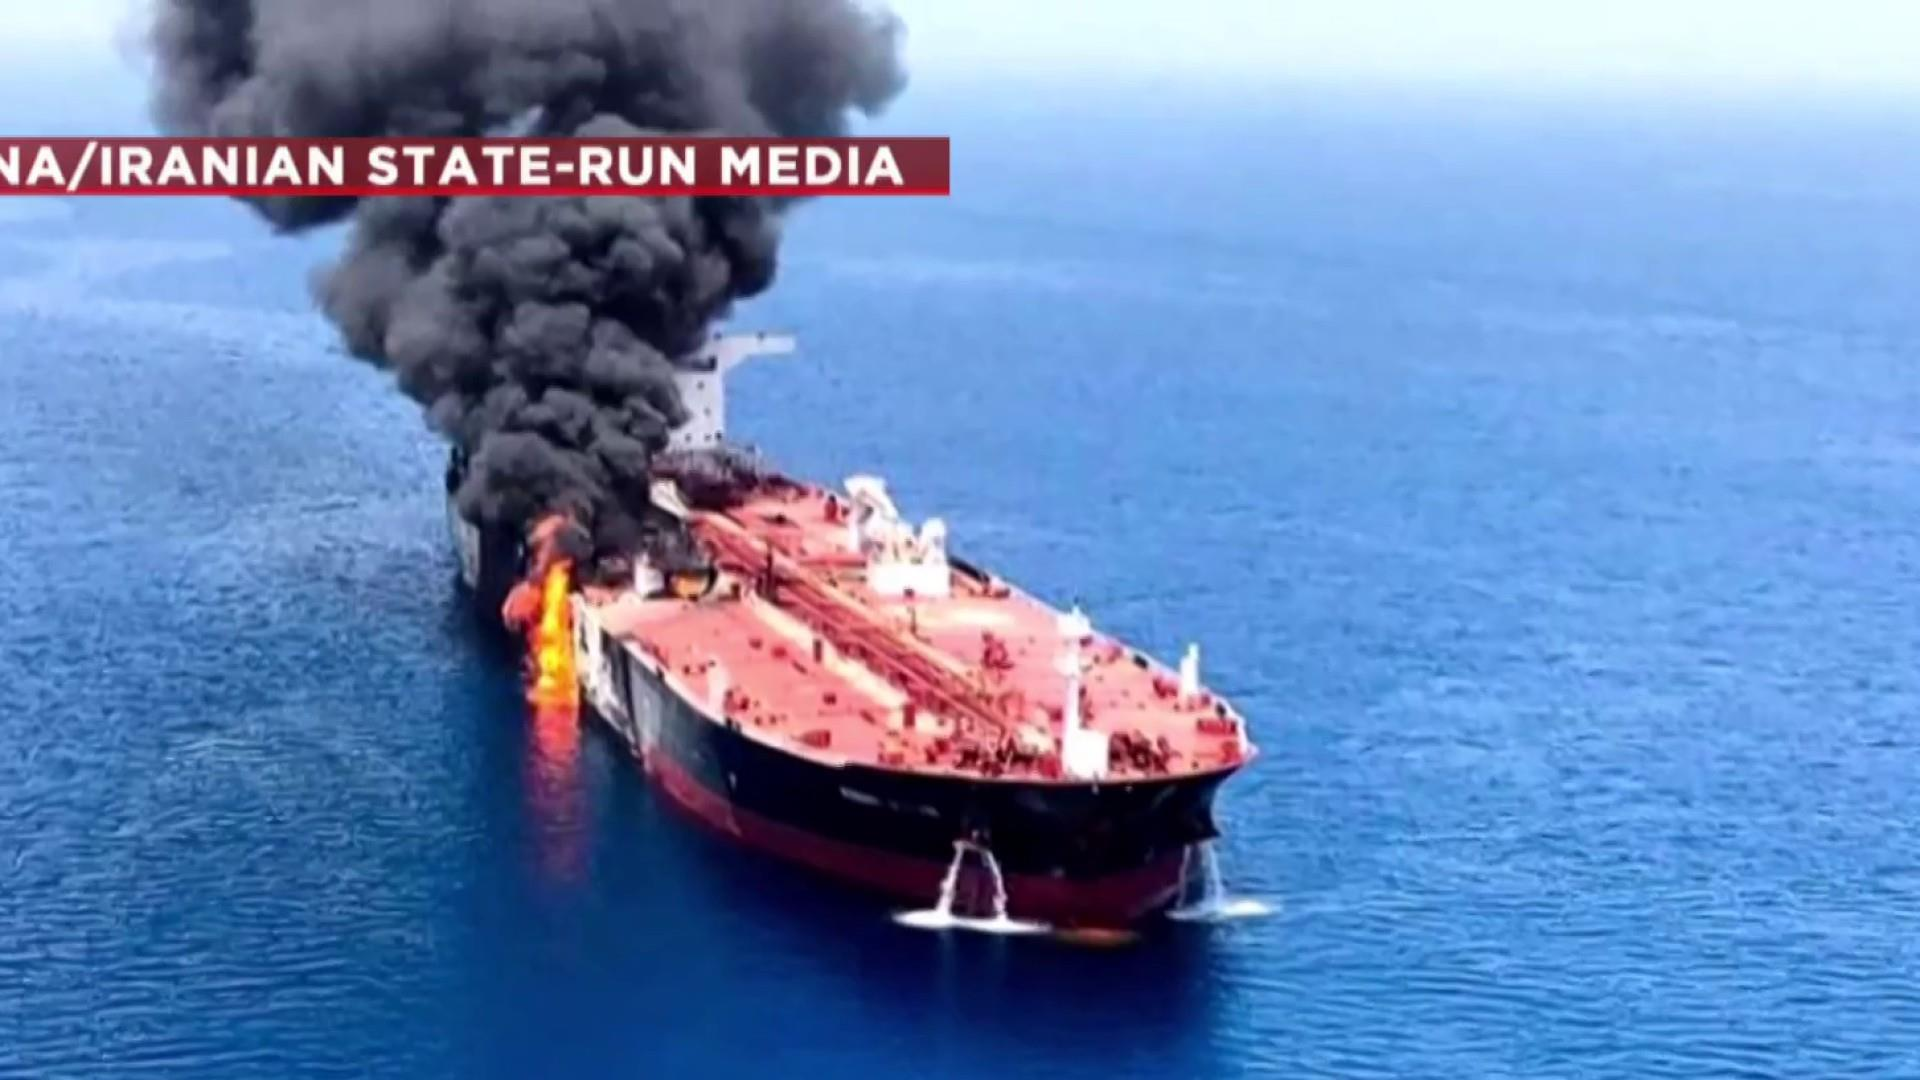 Dozens rescued after 'reported attack' on tankers off Iran coast